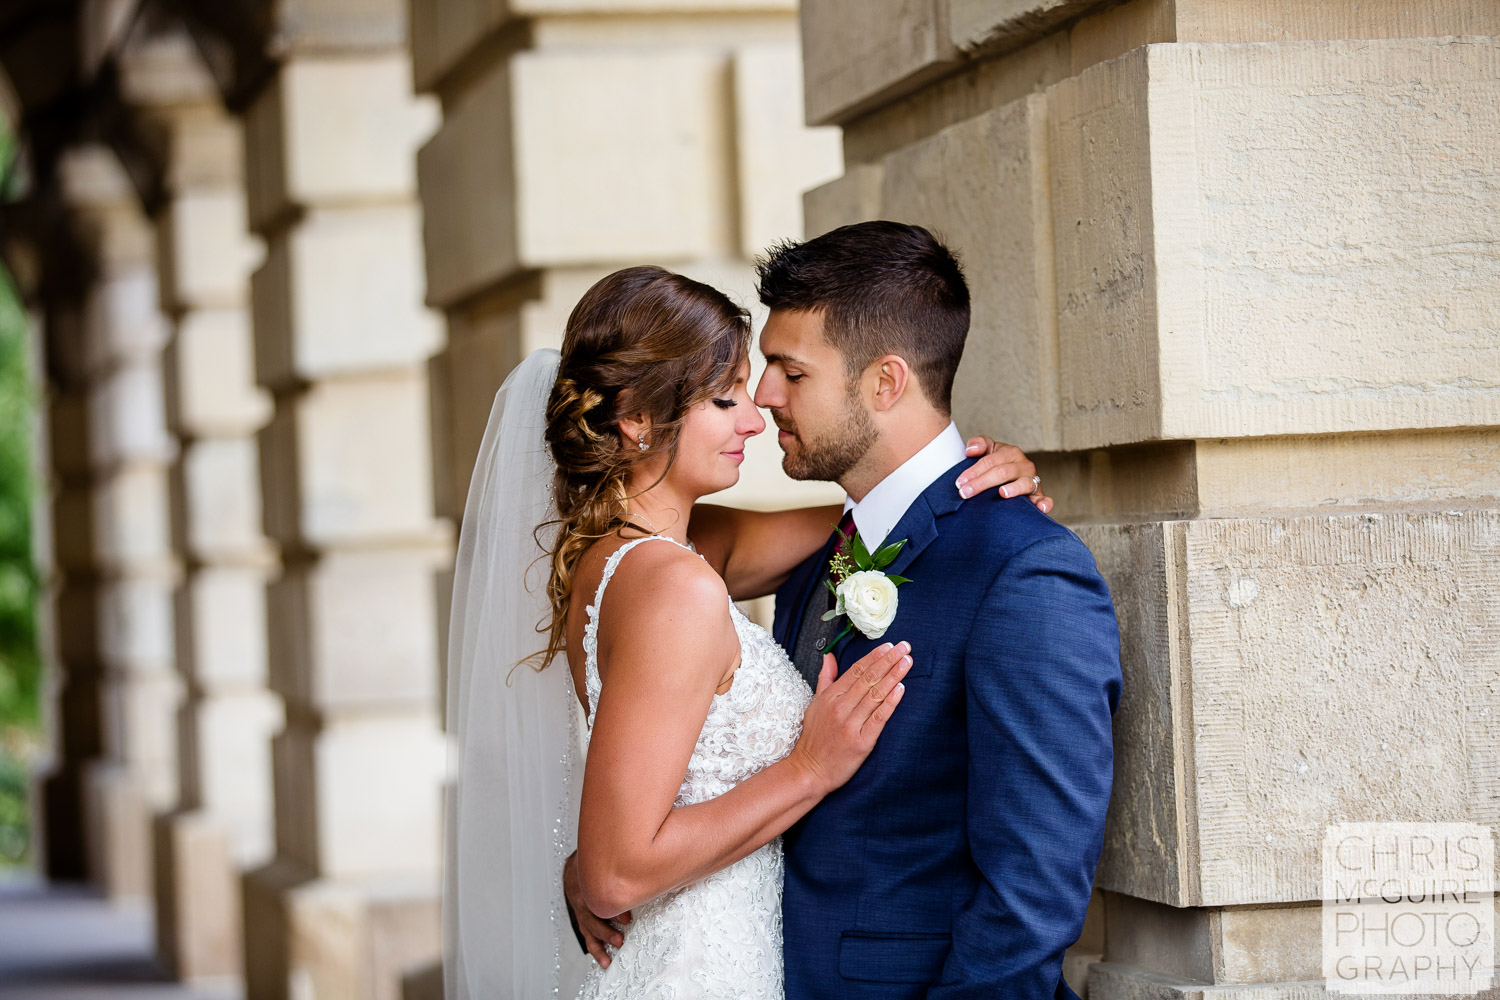 Romantic portrait of bride and groom at Midwest wedding